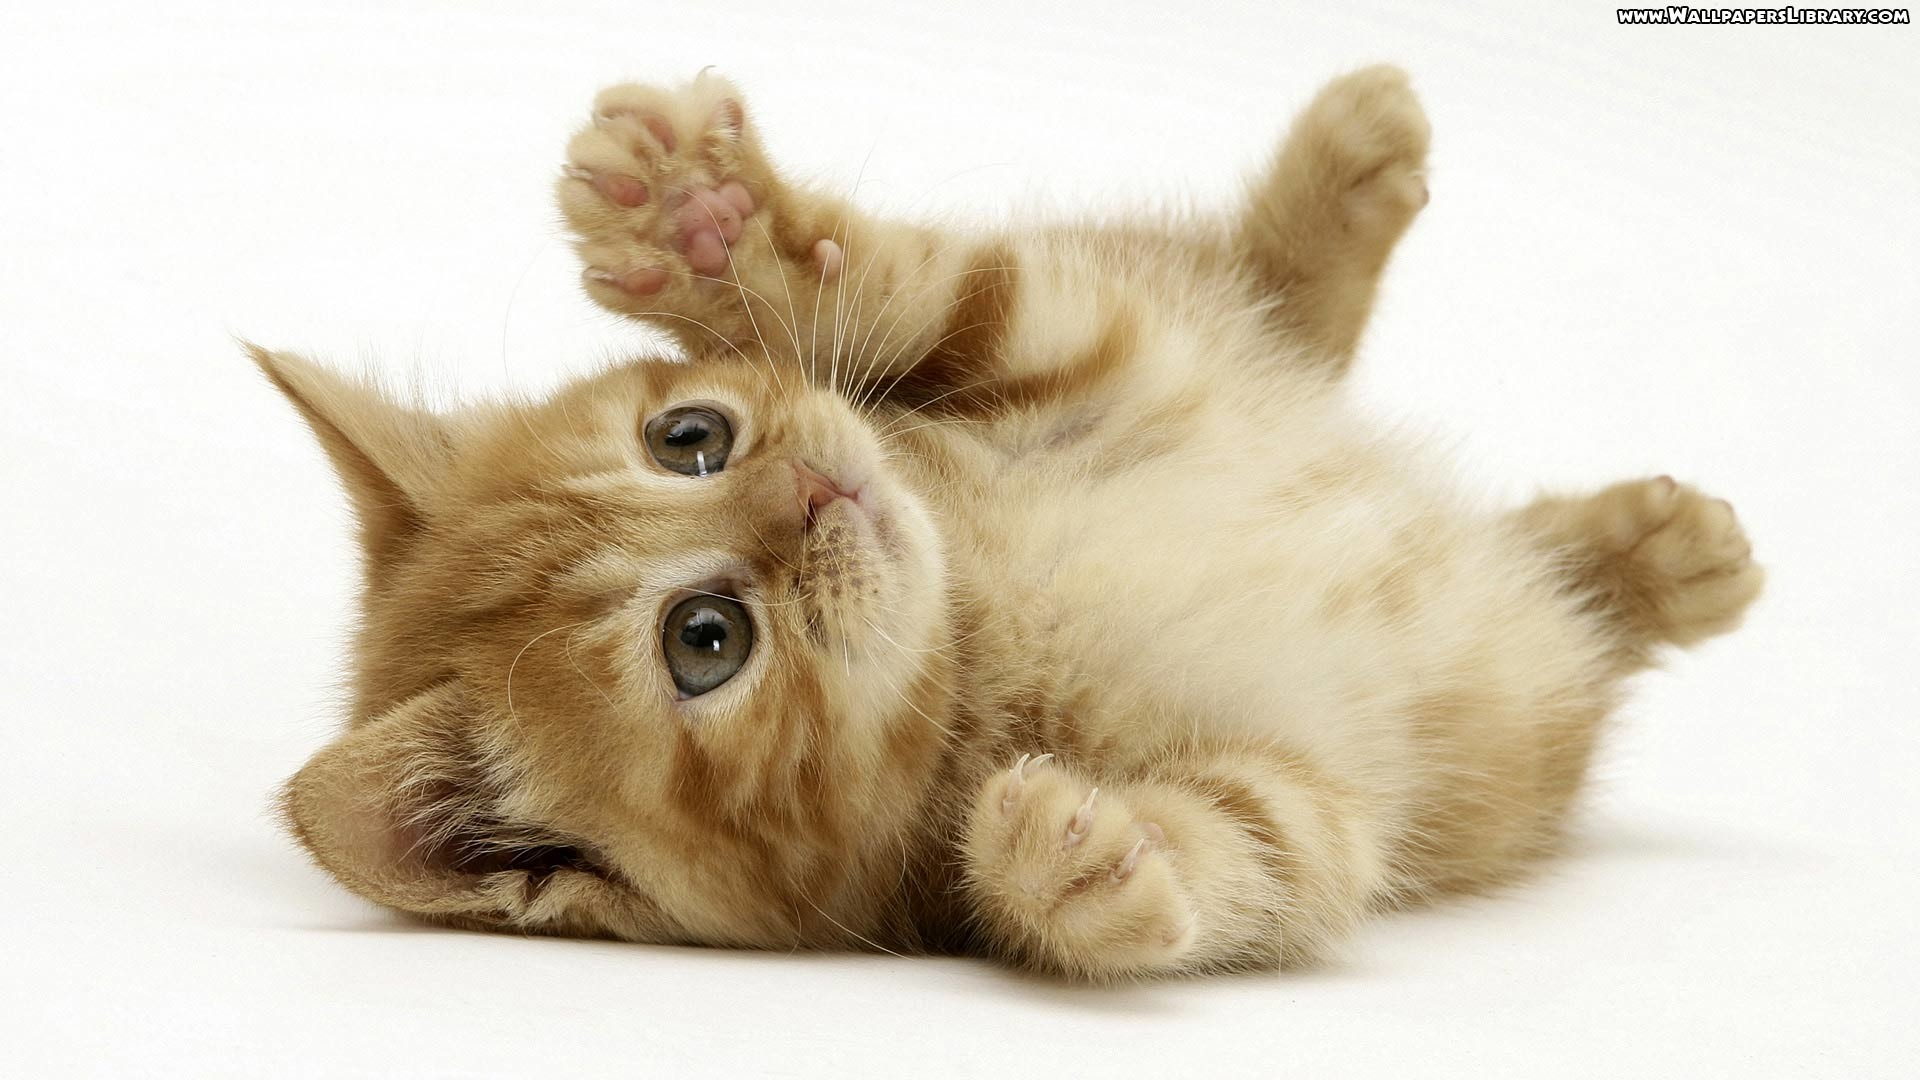 Cute Kitten Wallpaper Android Apps on Google Play